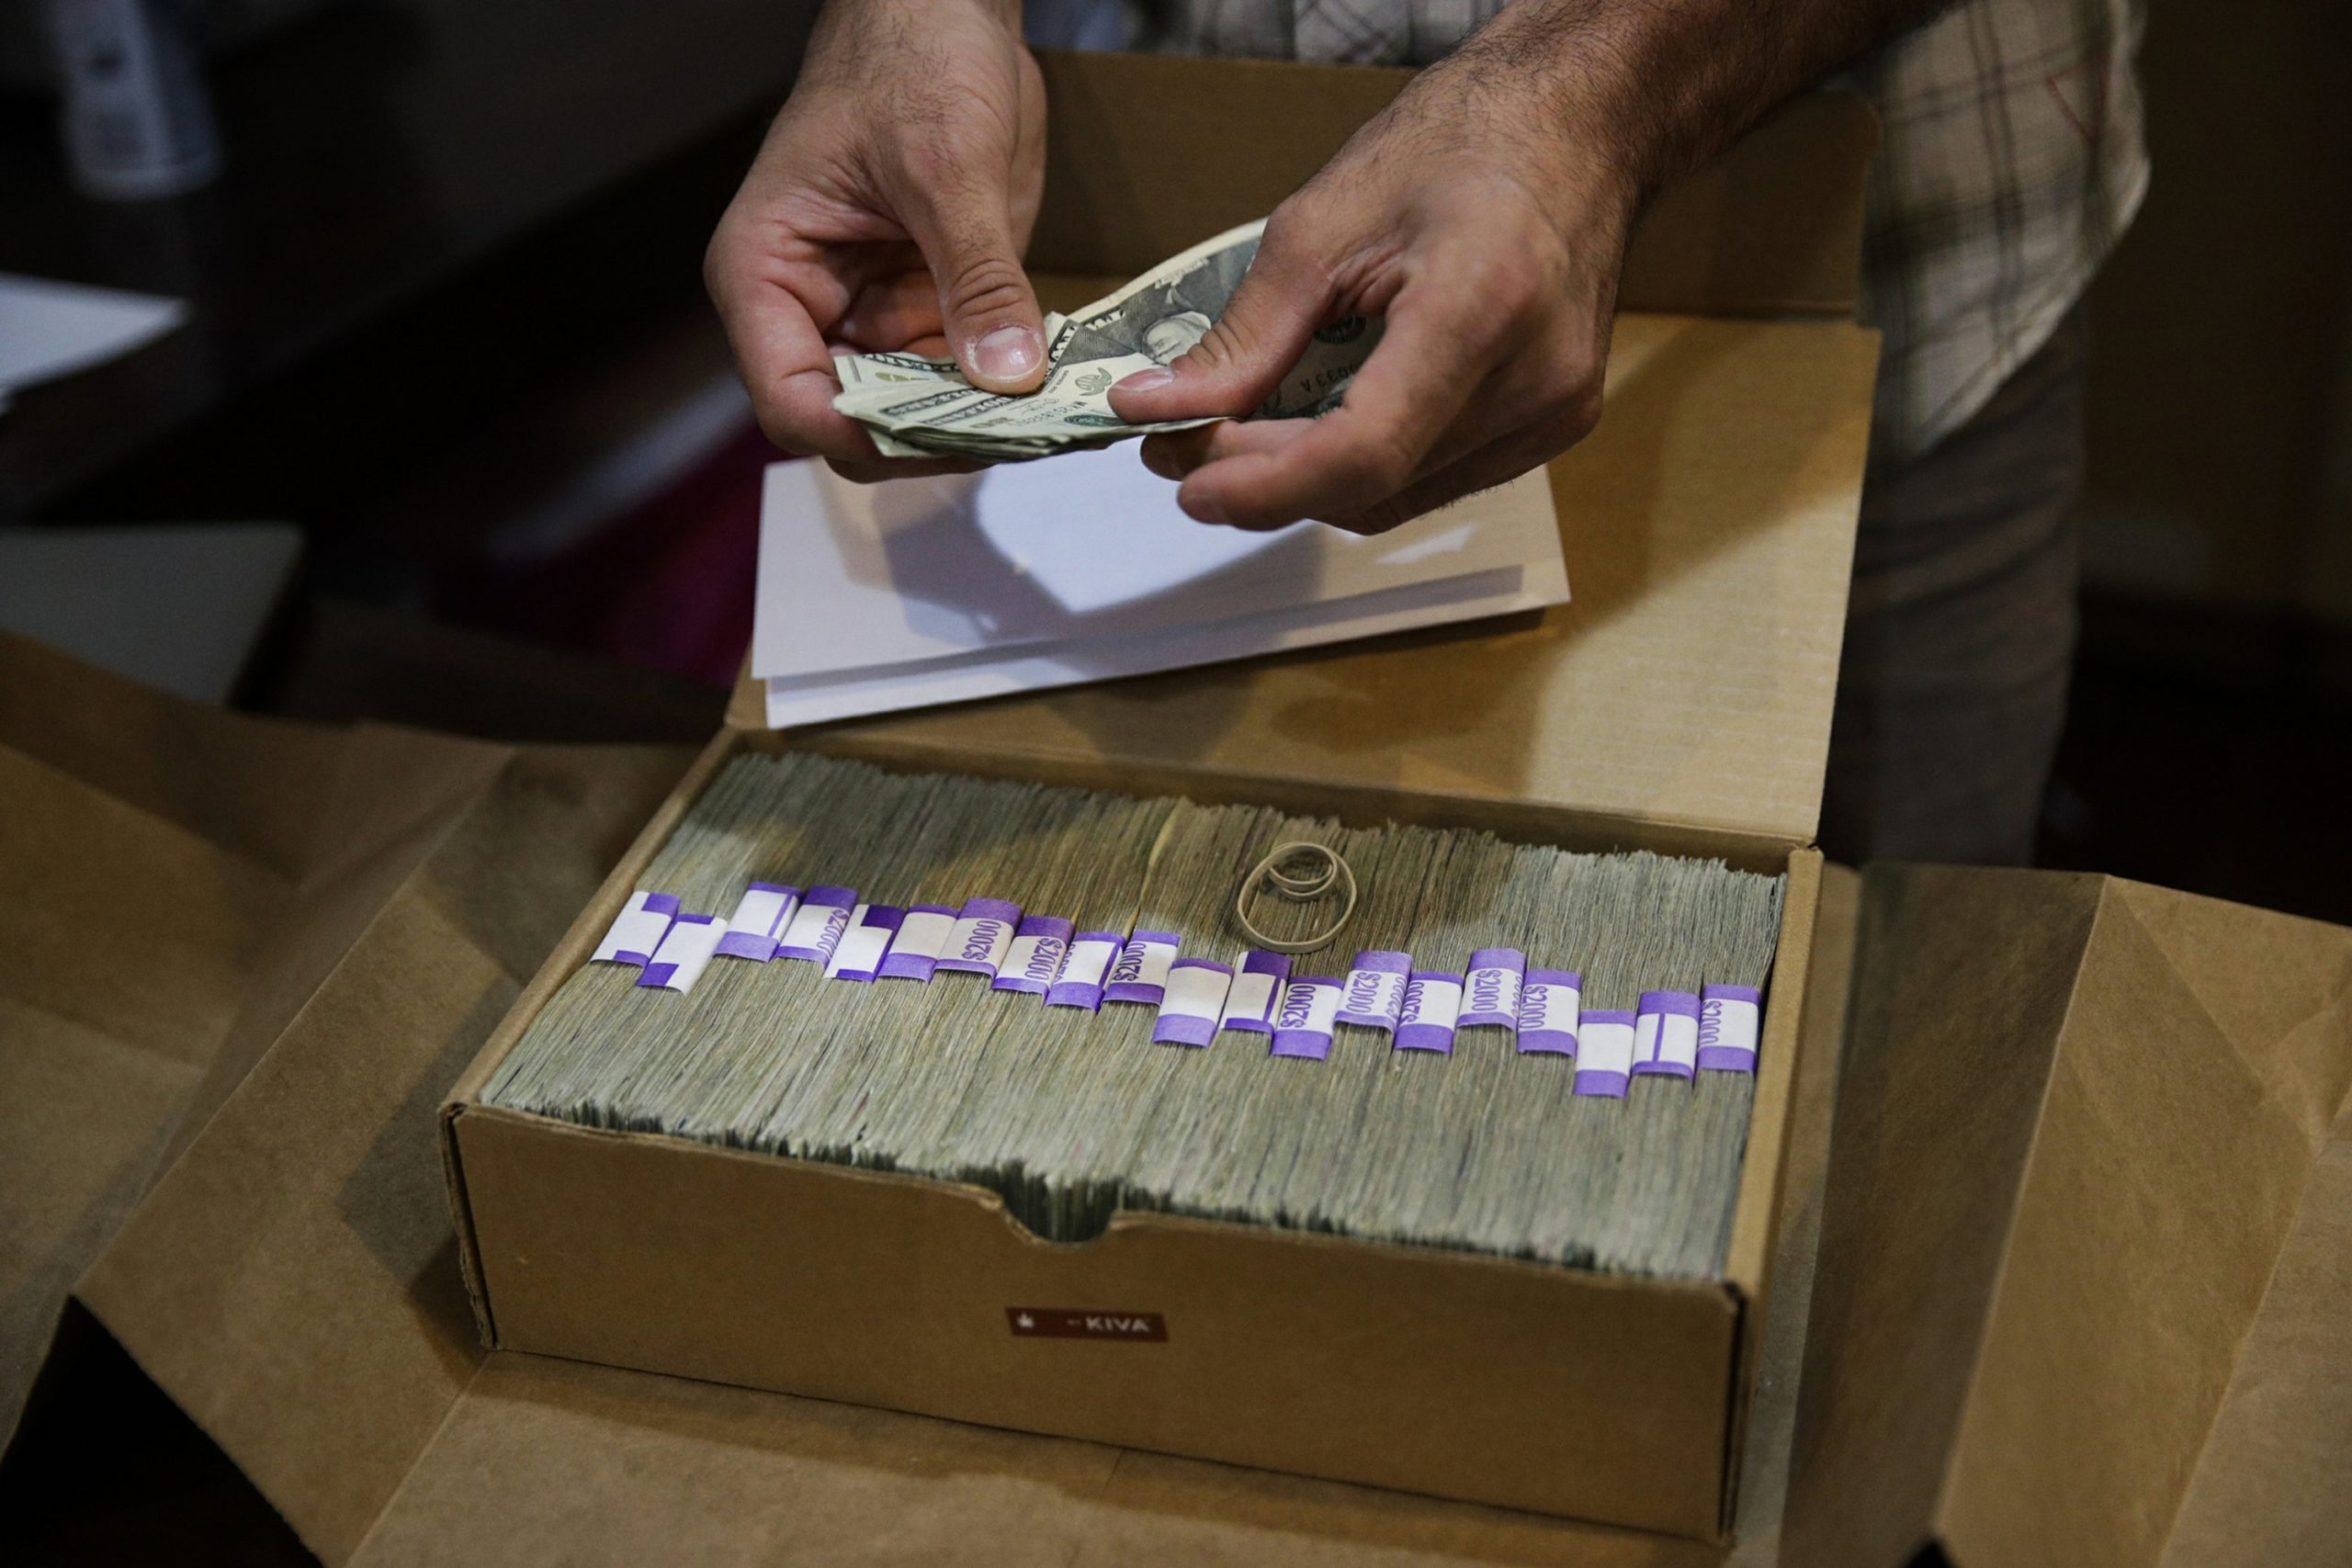 Marijuana banking bill passed by House Financial Services Committee; full US House vote expected within weeks